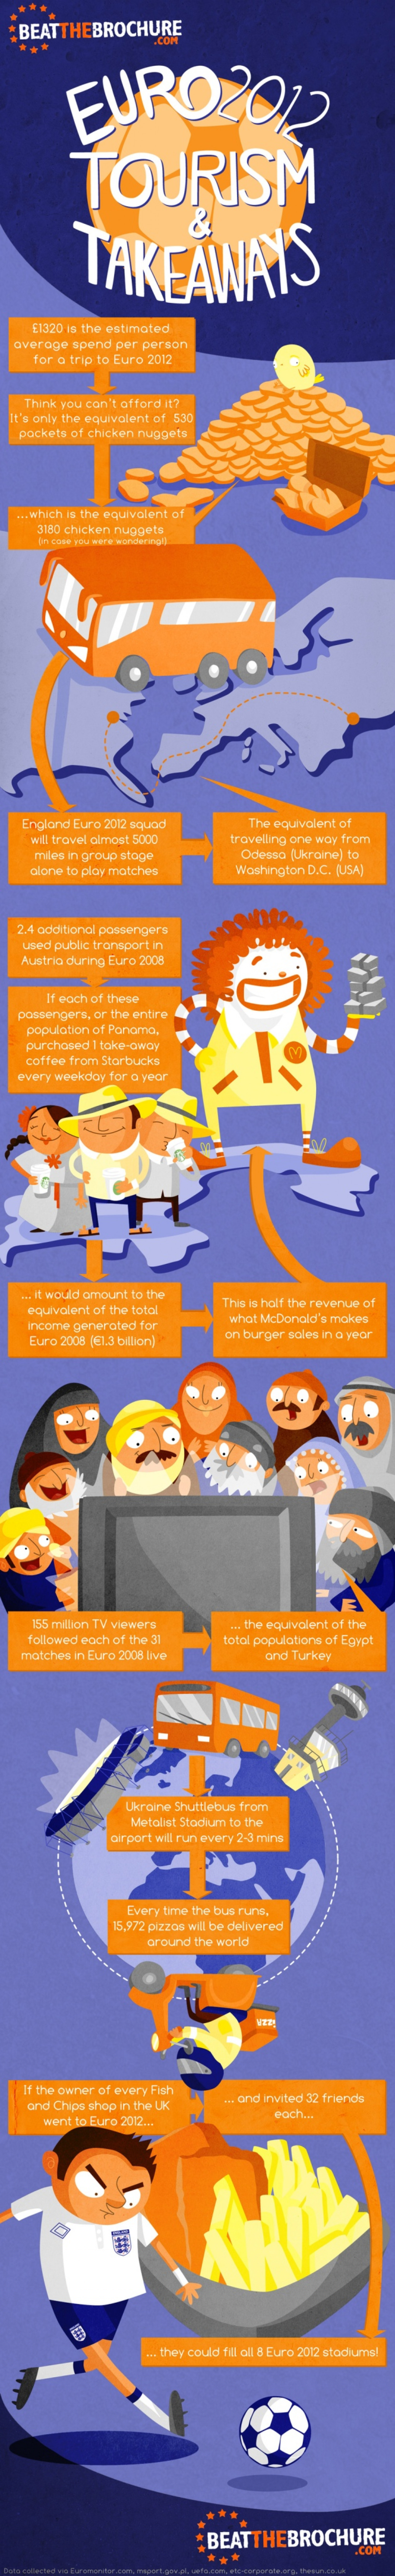 Euro 2012, Tourism & Takeaways Infographic